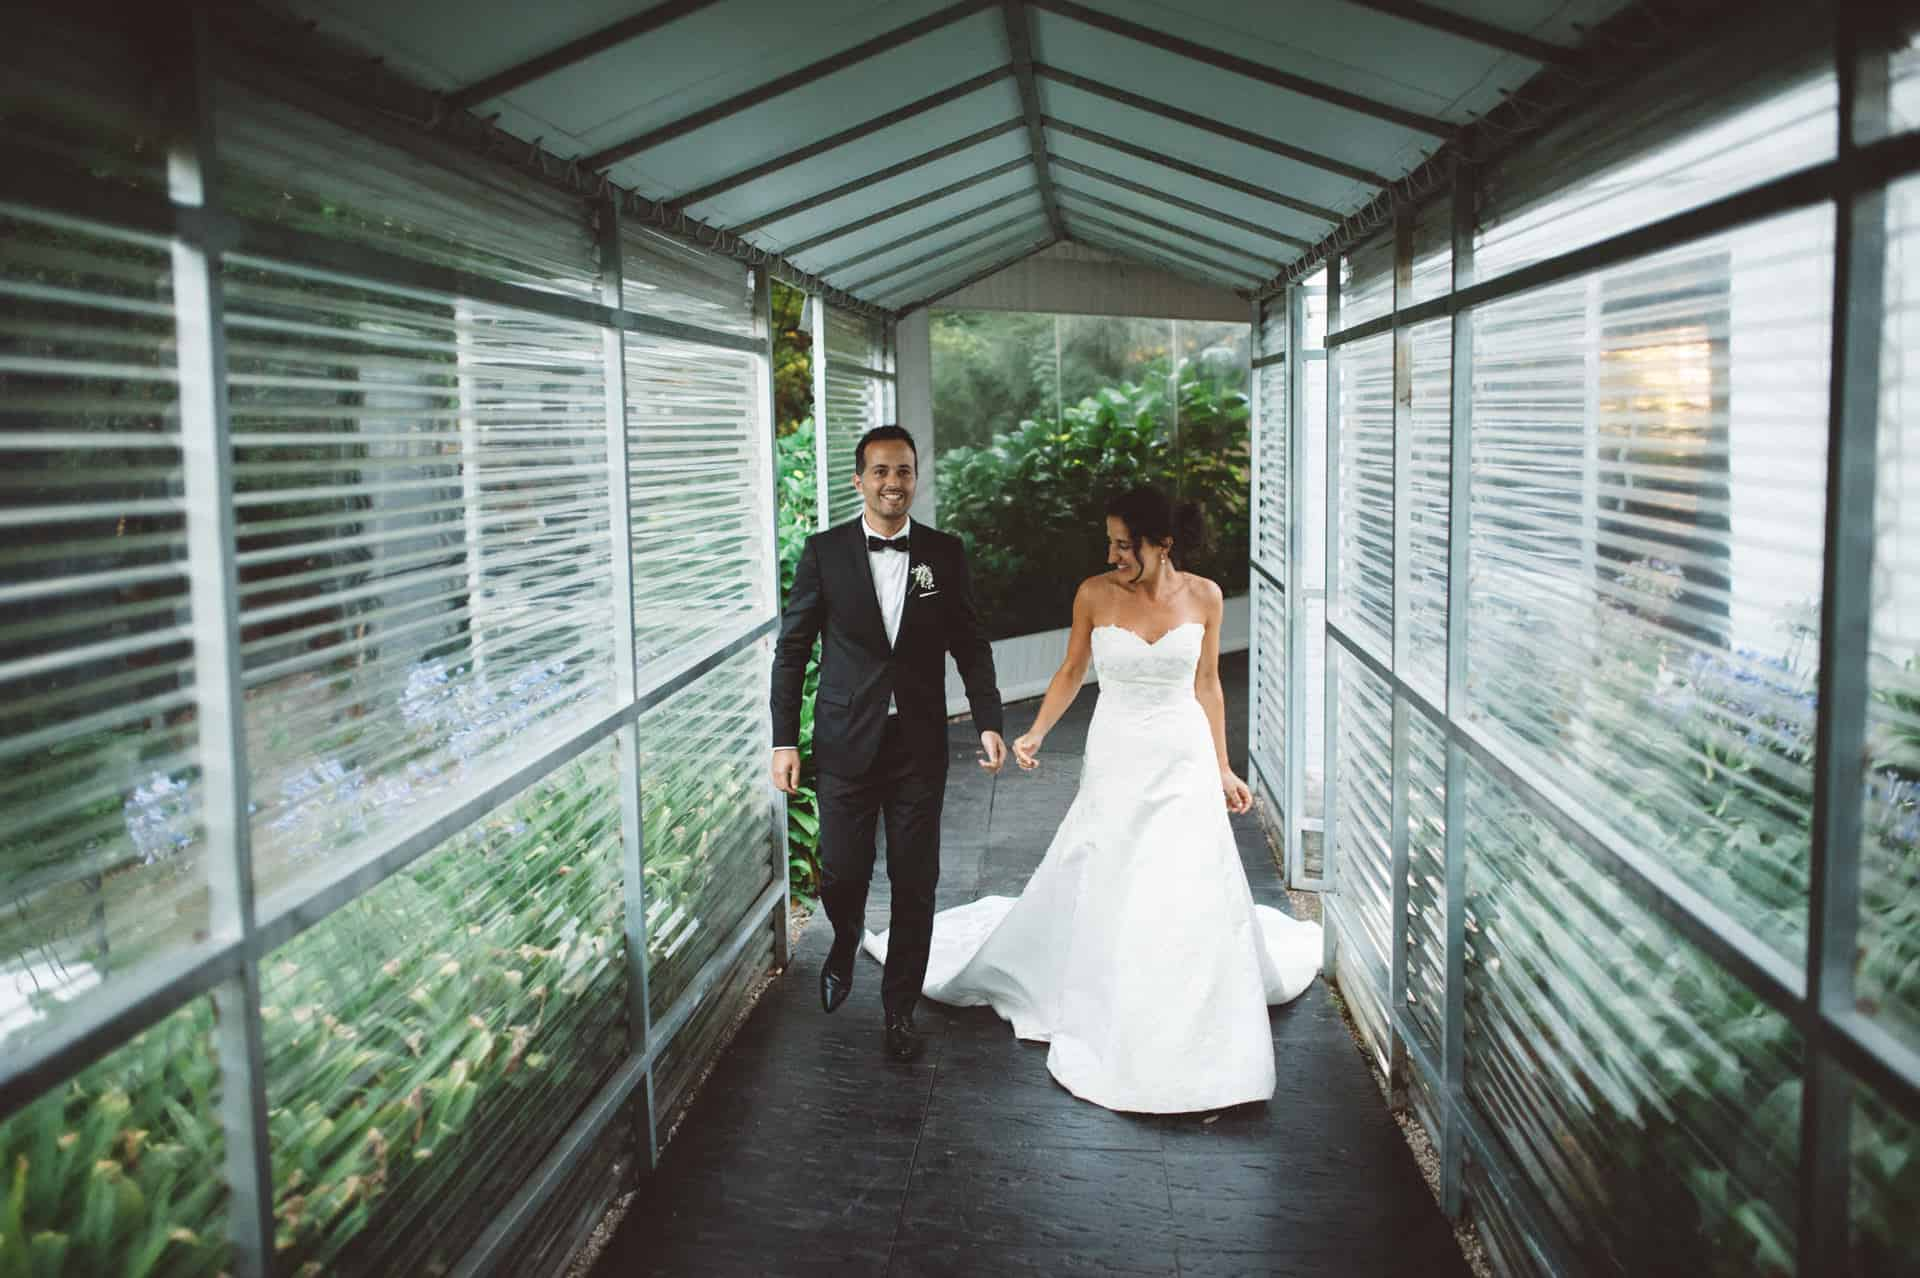 Best wedding images of the year (169 of 316)